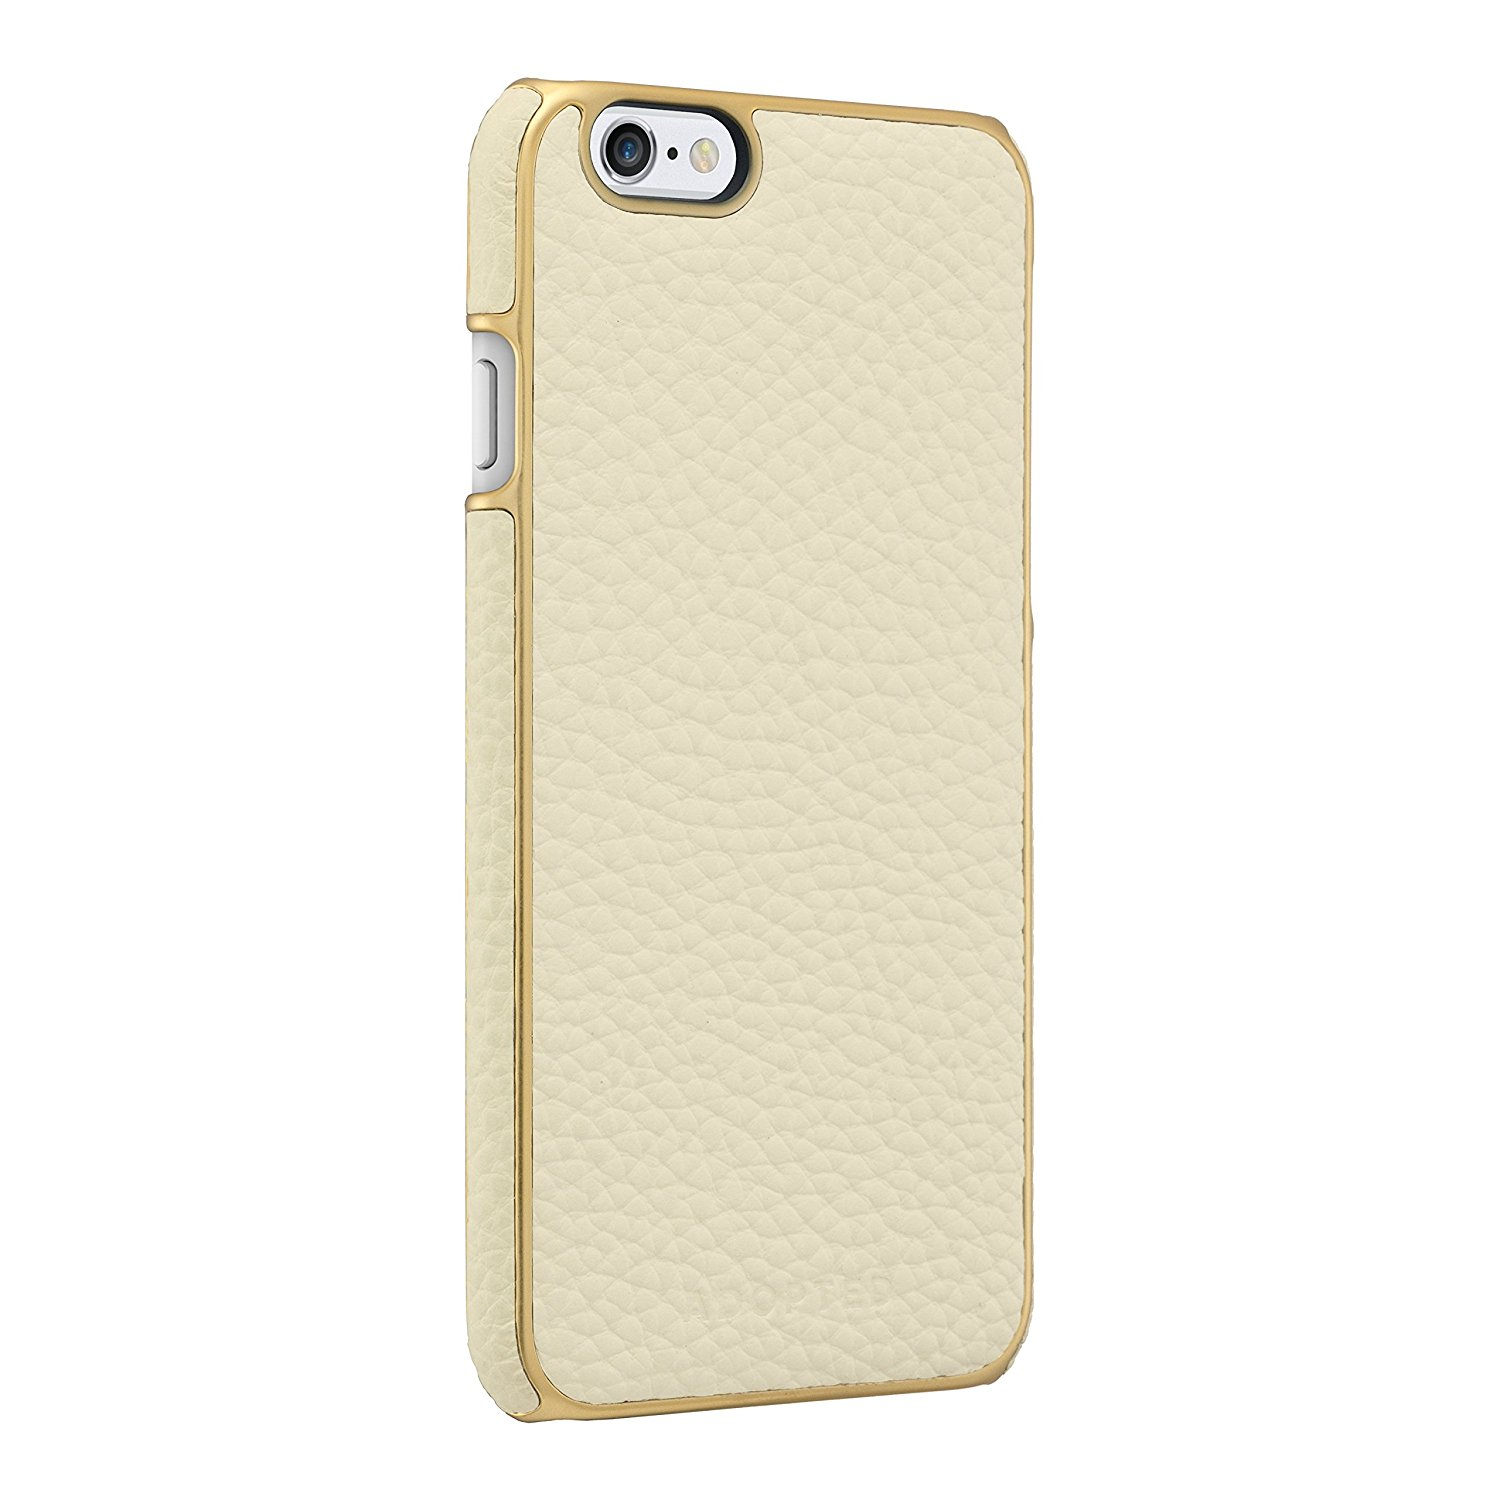 c7fbb3f7d13200 Adopted Leather Wrap Case for Apple iPhone 6 6s - White Gold